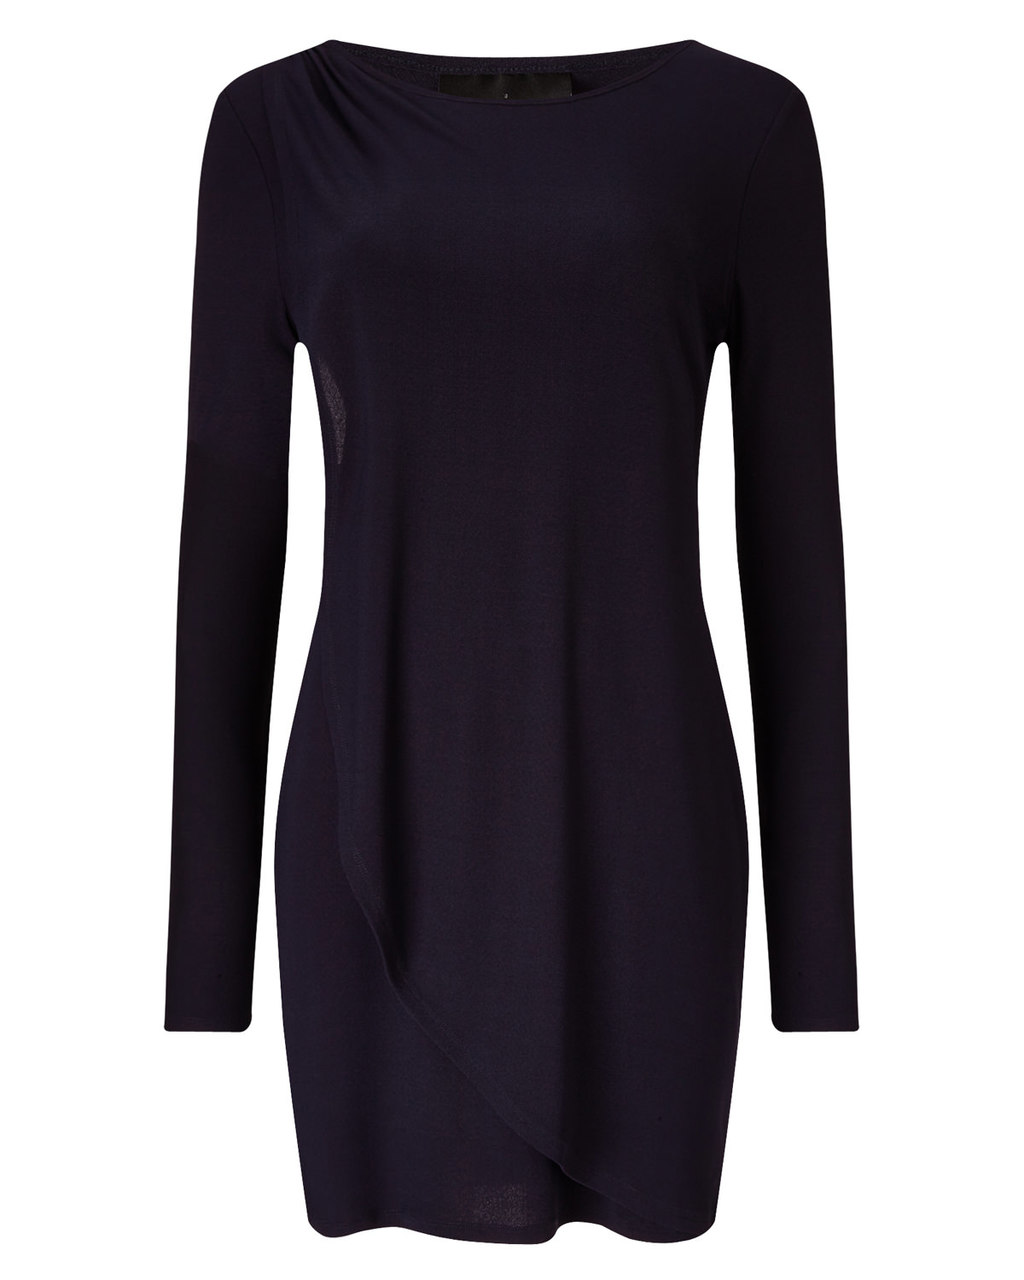 Dotty Draped Tunic - neckline: slash/boat neckline; pattern: plain; style: tunic; predominant colour: navy; occasions: casual, creative work; fibres: cotton - 100%; fit: straight cut; length: mid thigh; sleeve length: long sleeve; sleeve style: standard; pattern type: fabric; texture group: jersey - stretchy/drapey; season: a/w 2015; wardrobe: basic